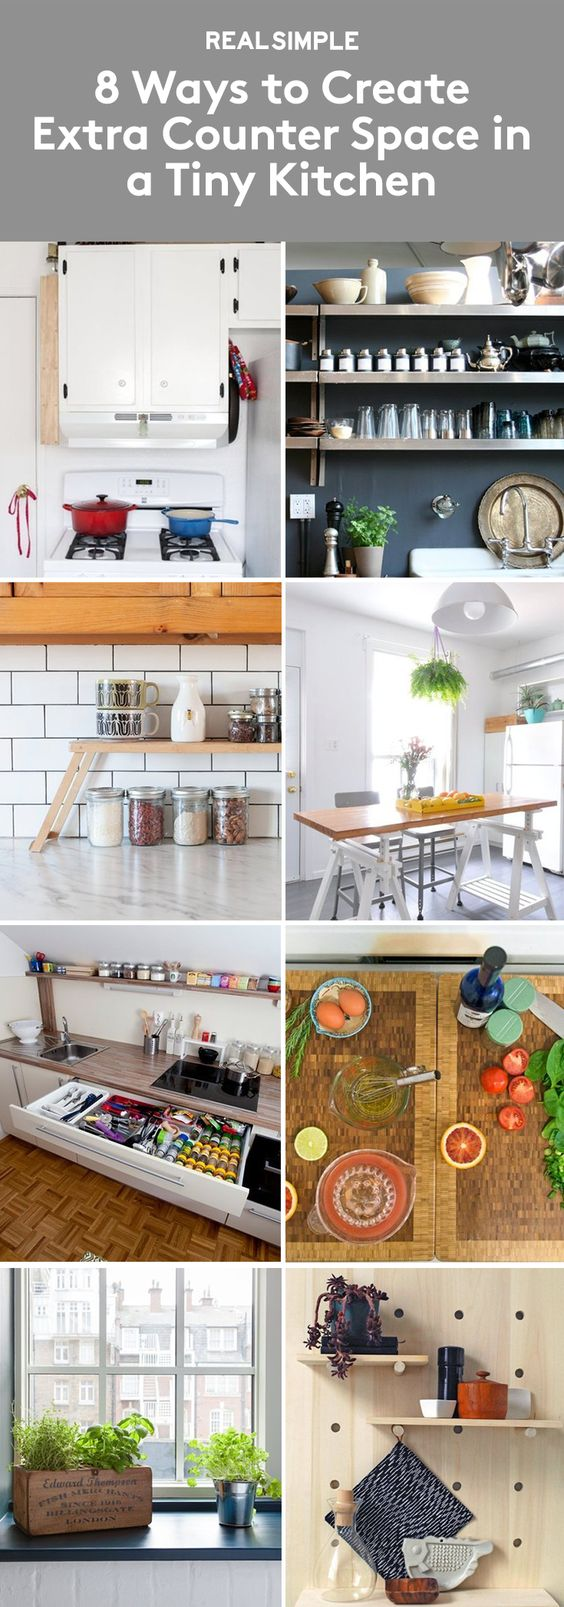 Tiny Kitchens Counter Space And Spaces On Pinterest